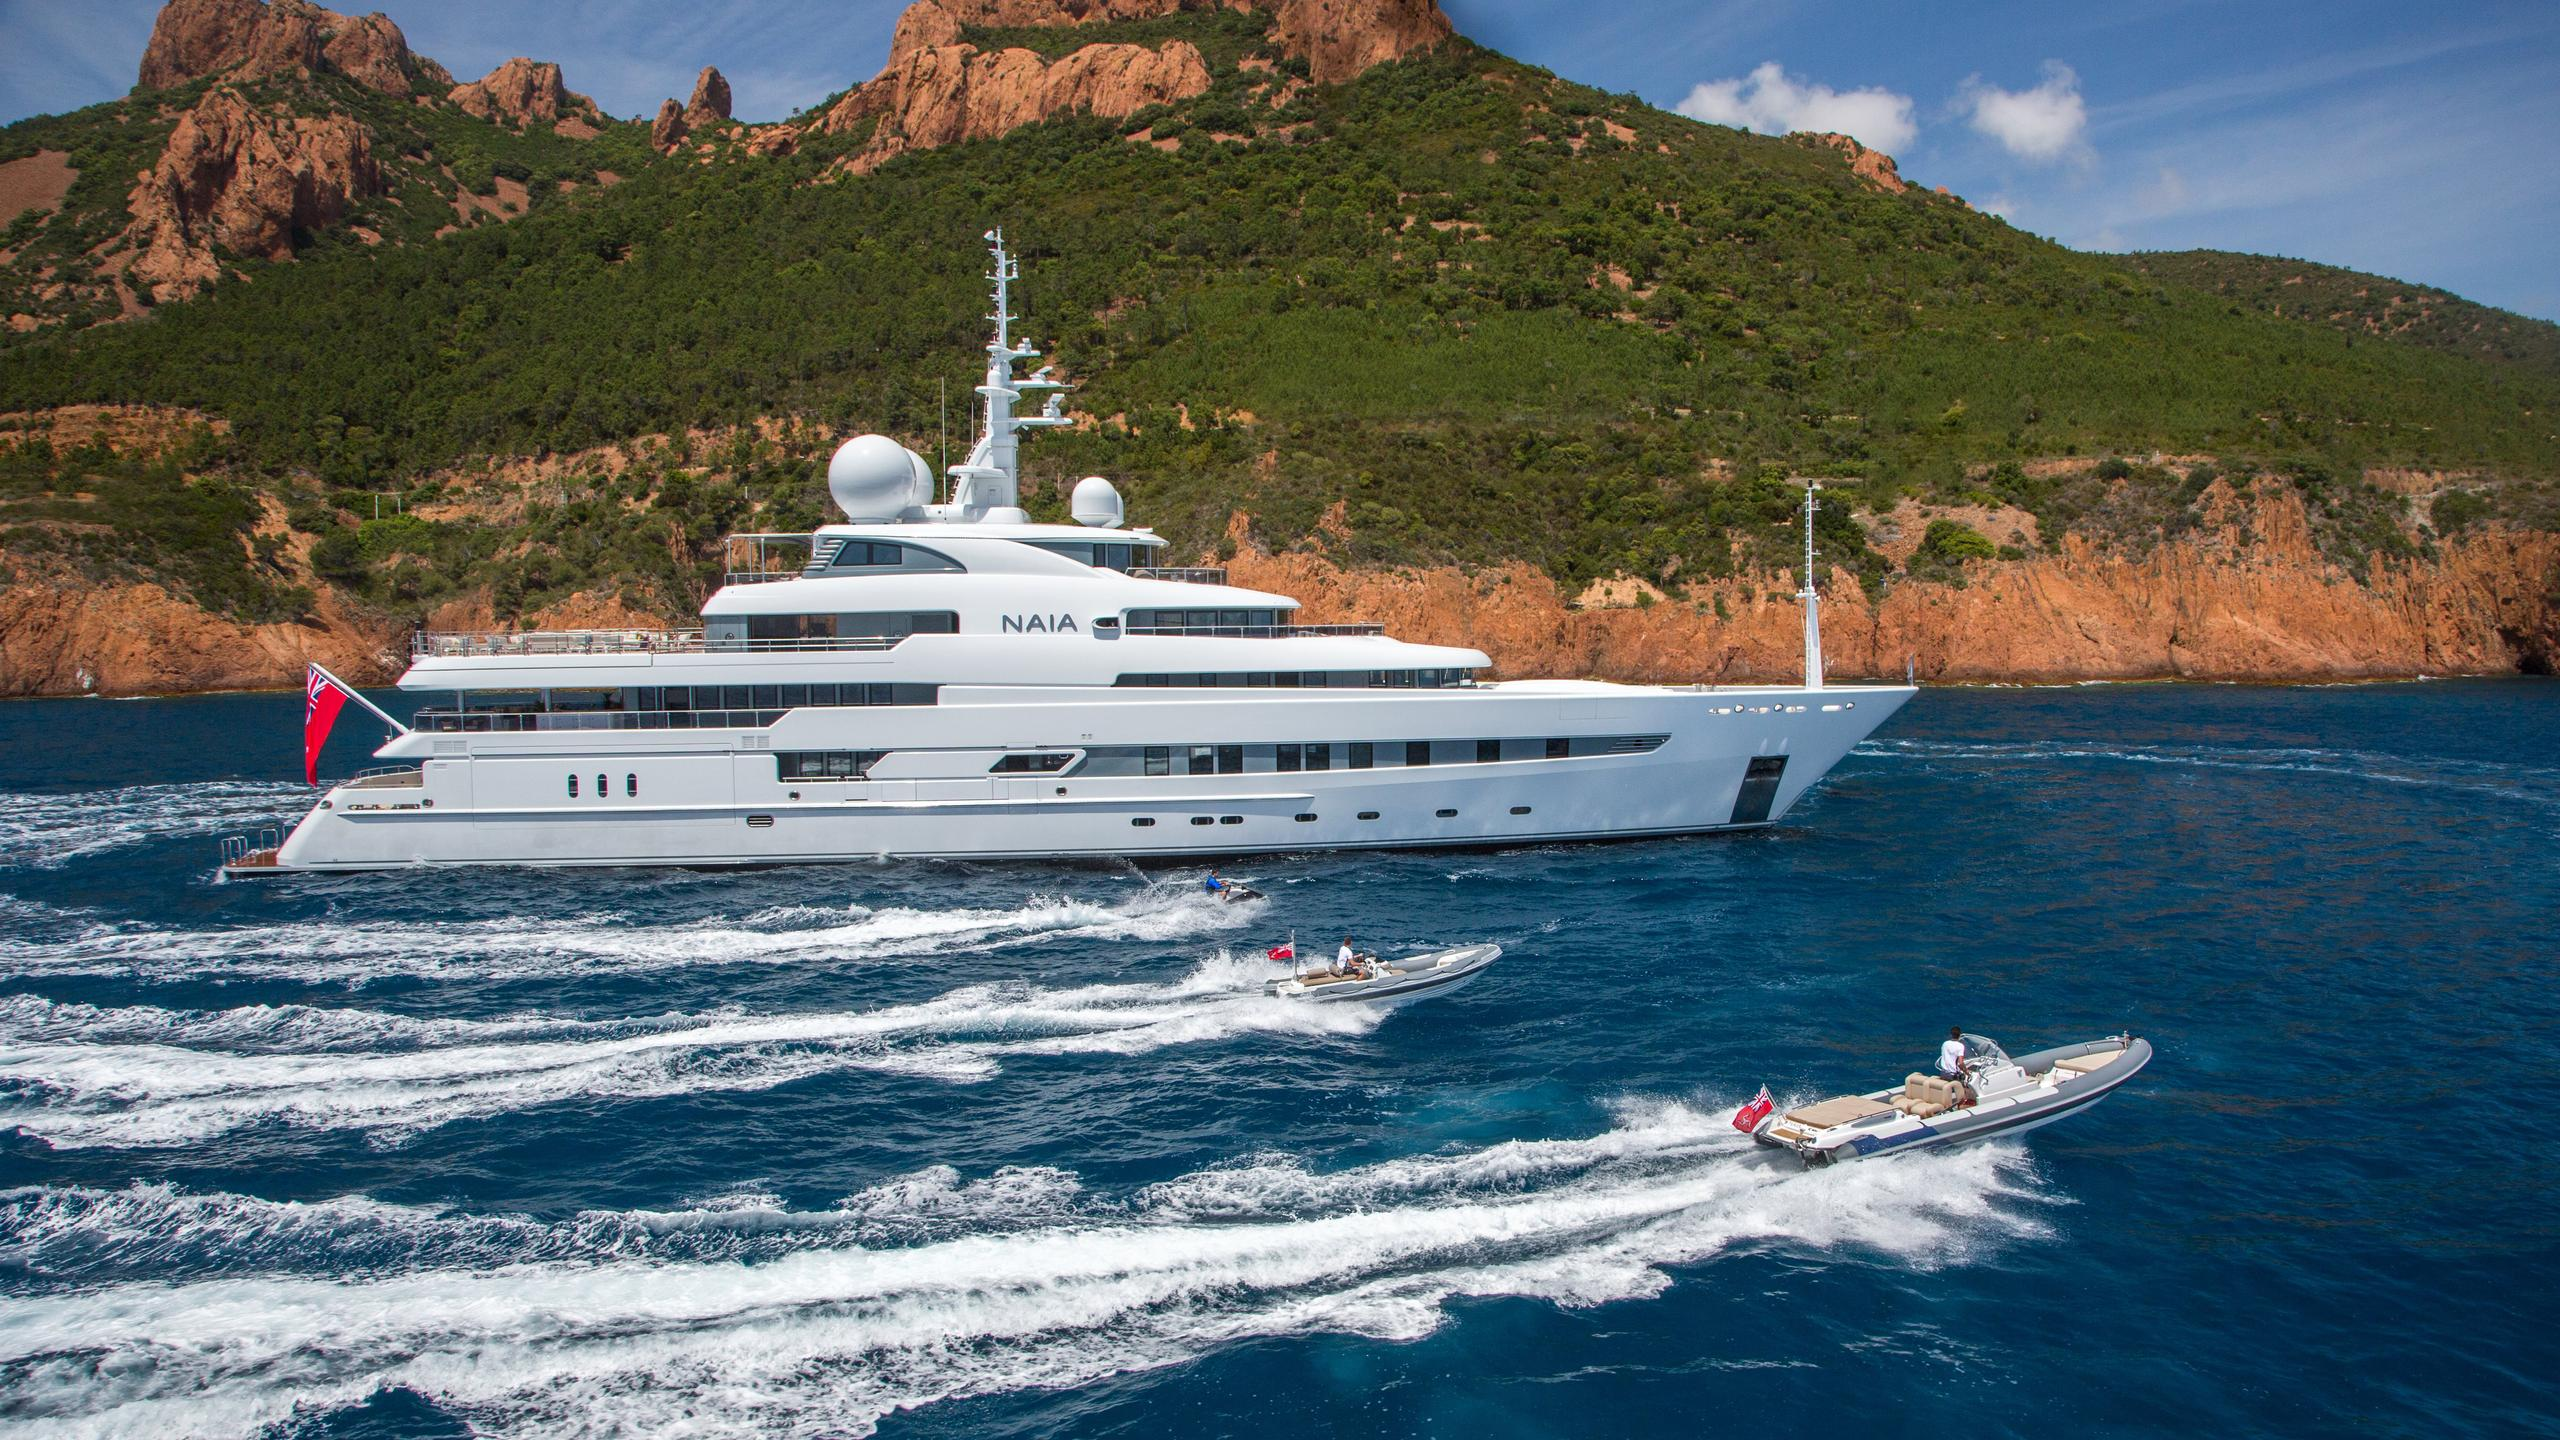 naia-yacht-for-charter-tenders-profile